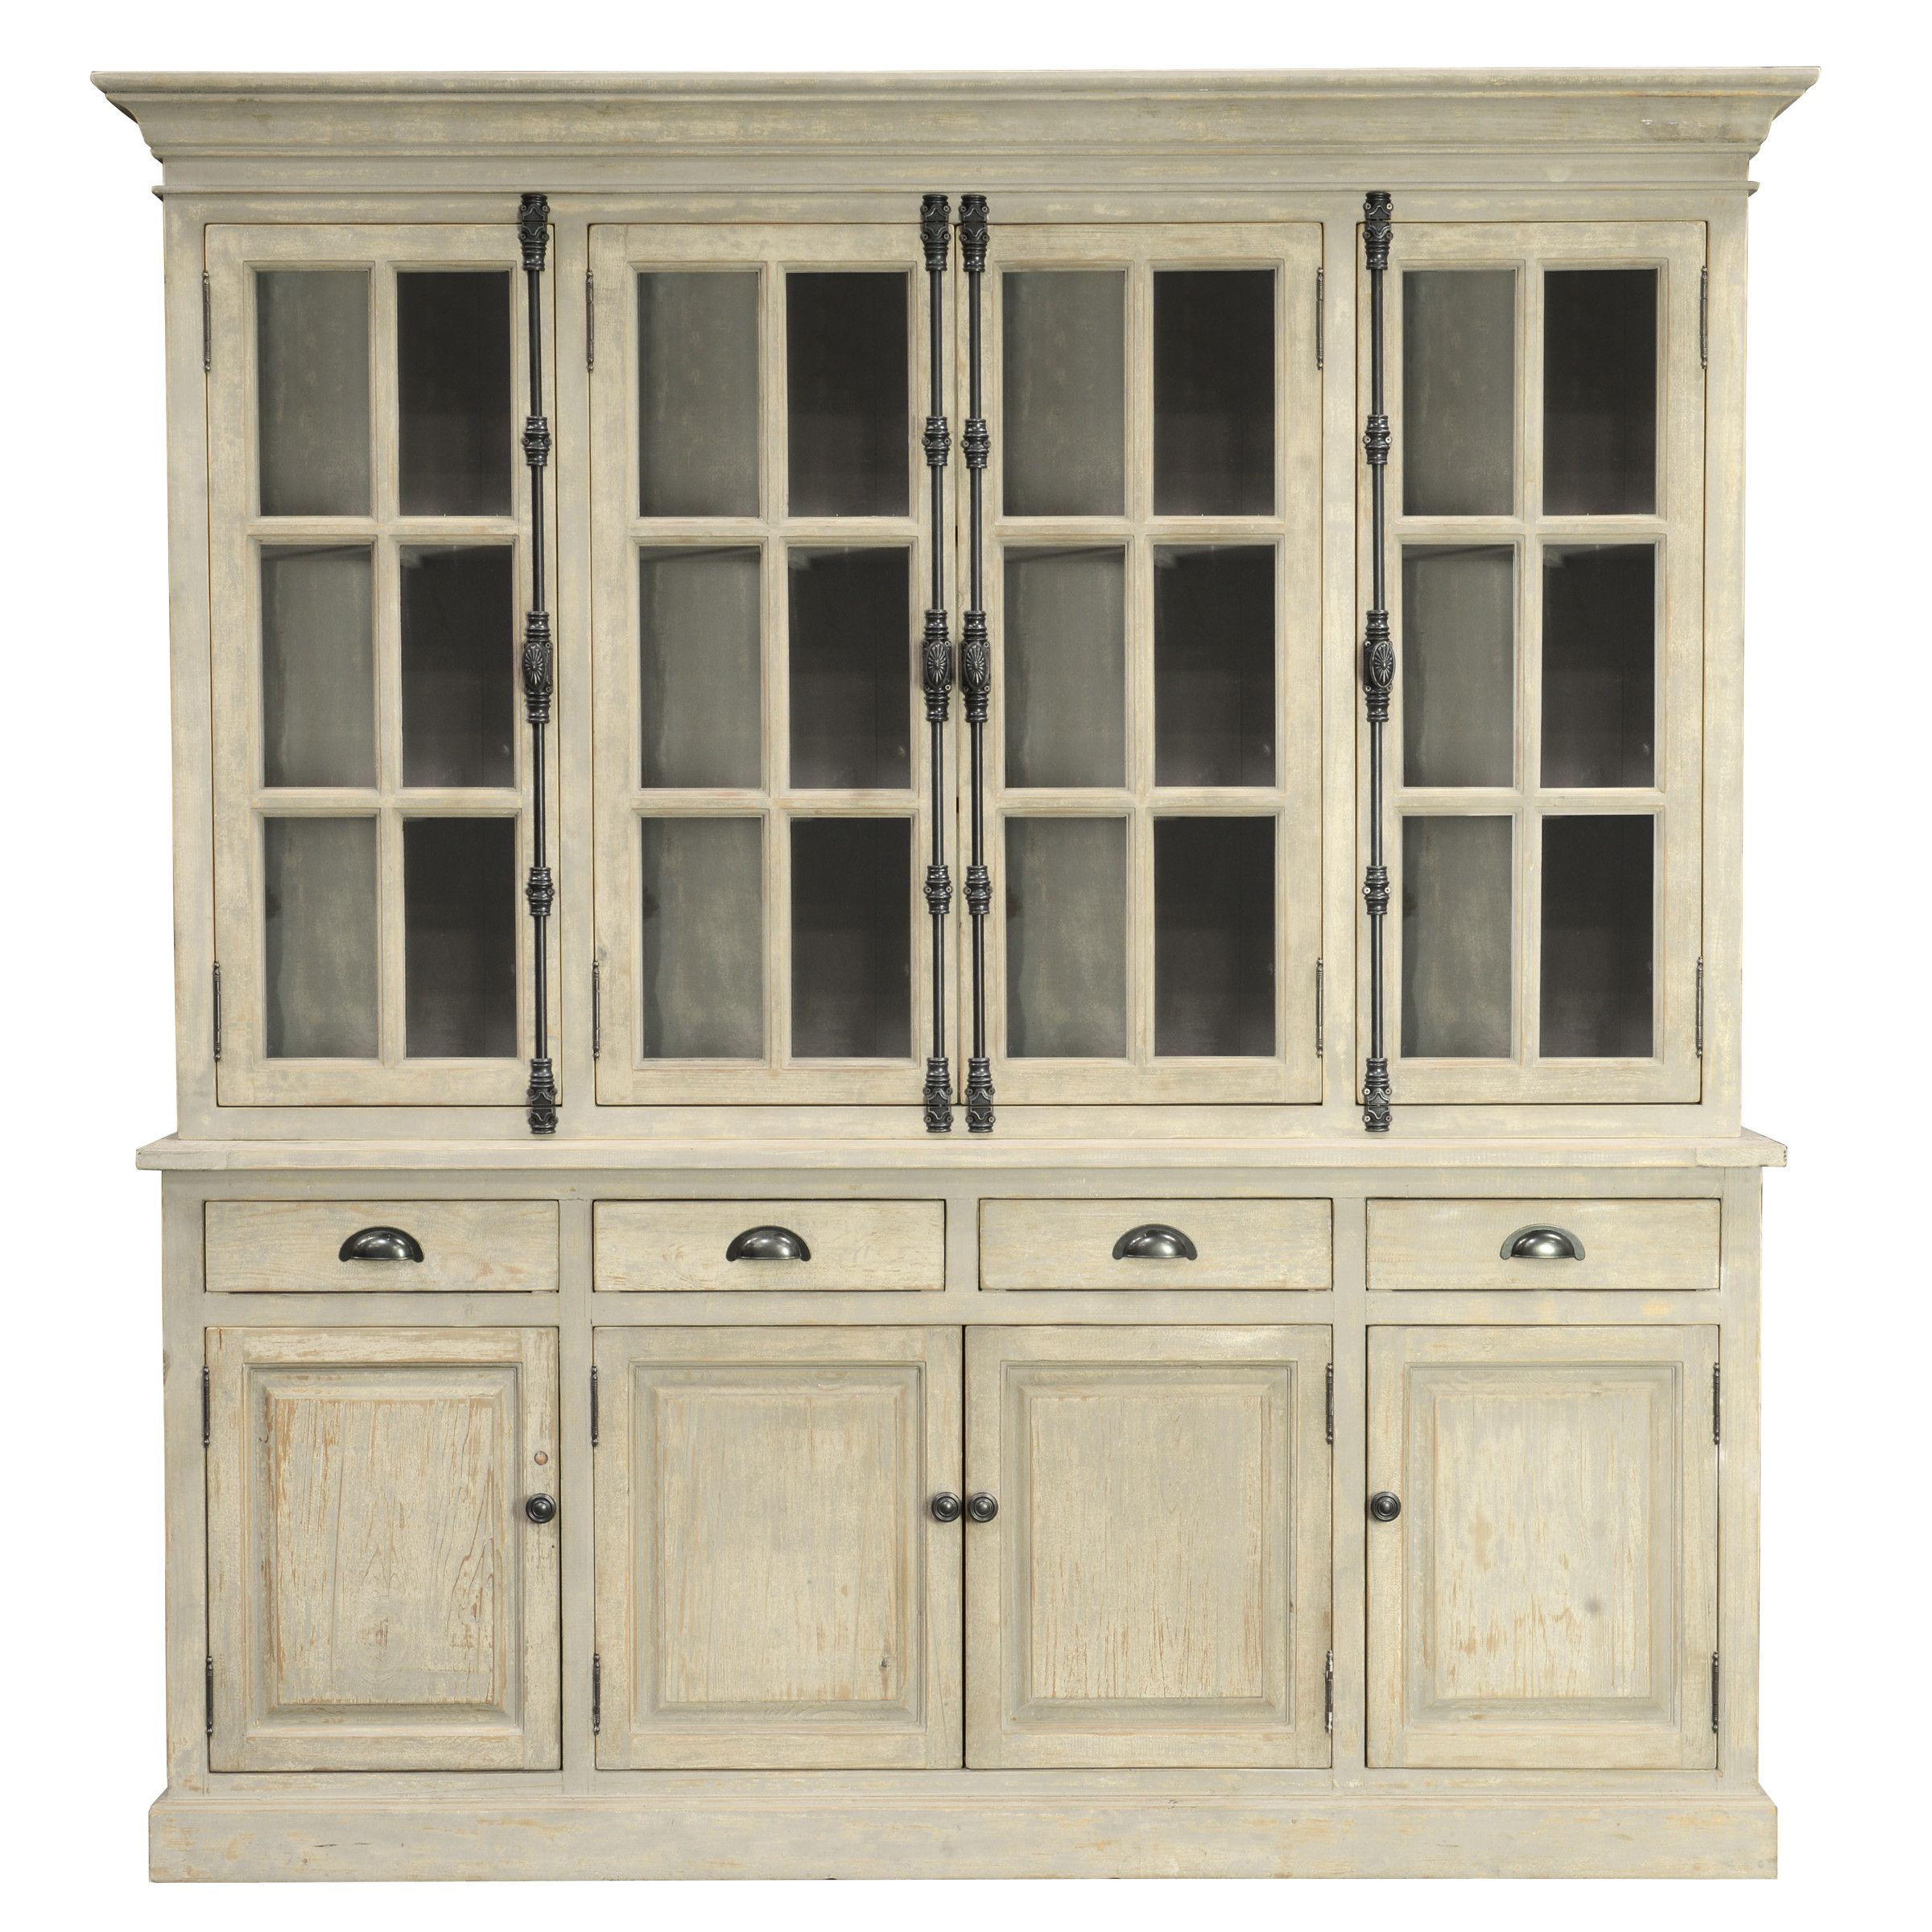 rooms cabinets granby dining reddish brown china merlot formal pc hutch products cabinet